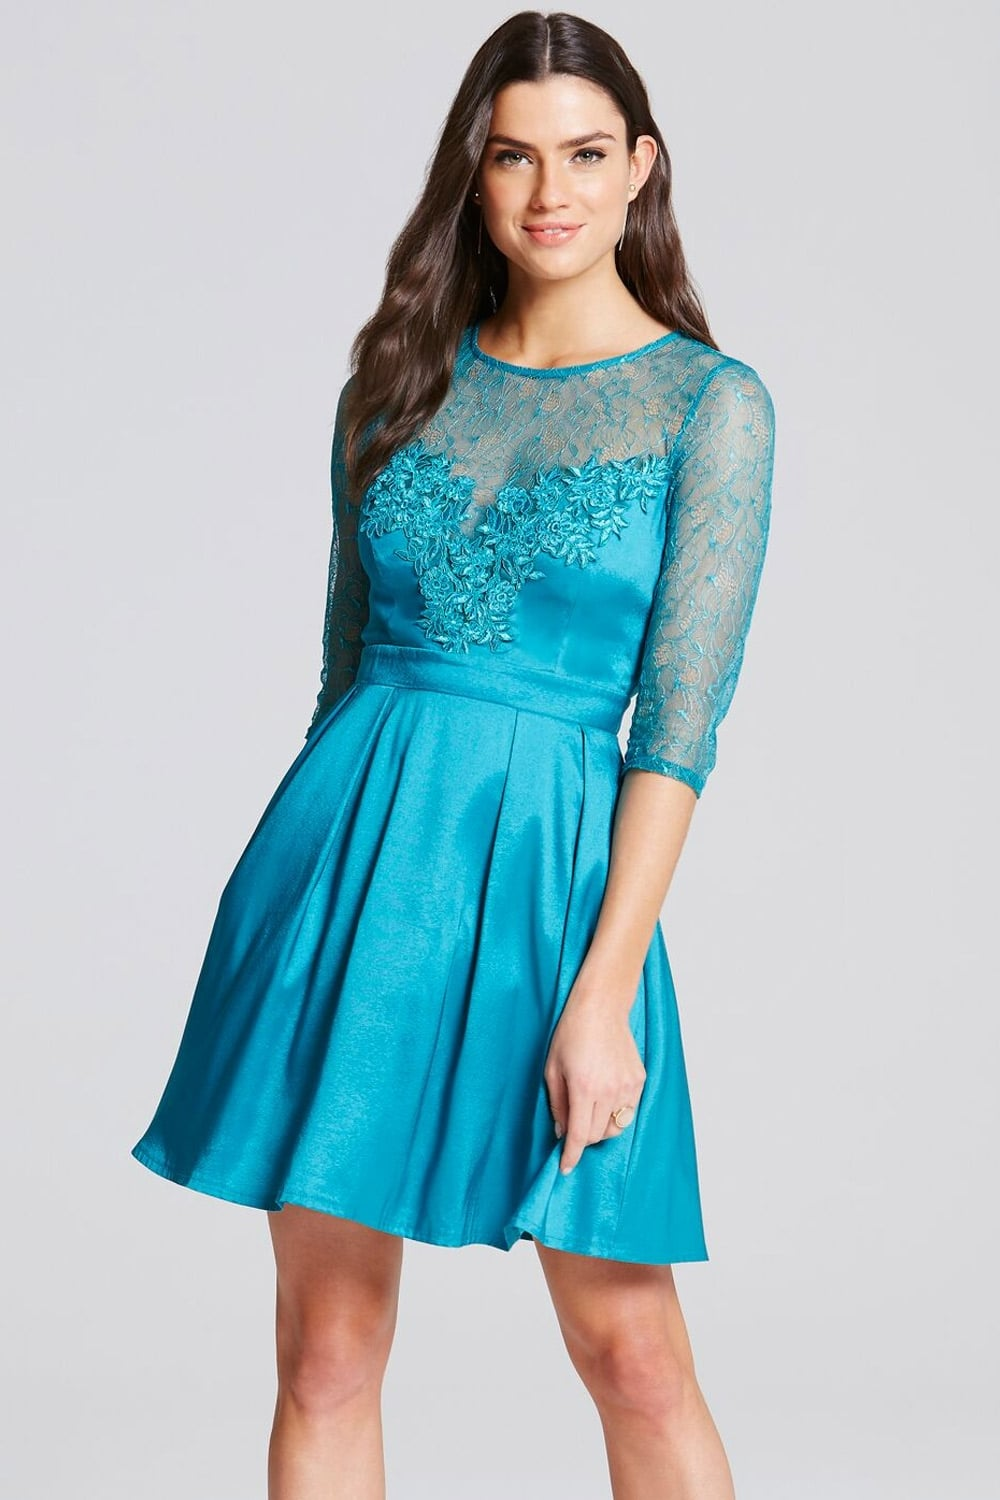 Turquoise Lace and Crochet Mini Dress - from Little Mistress UK